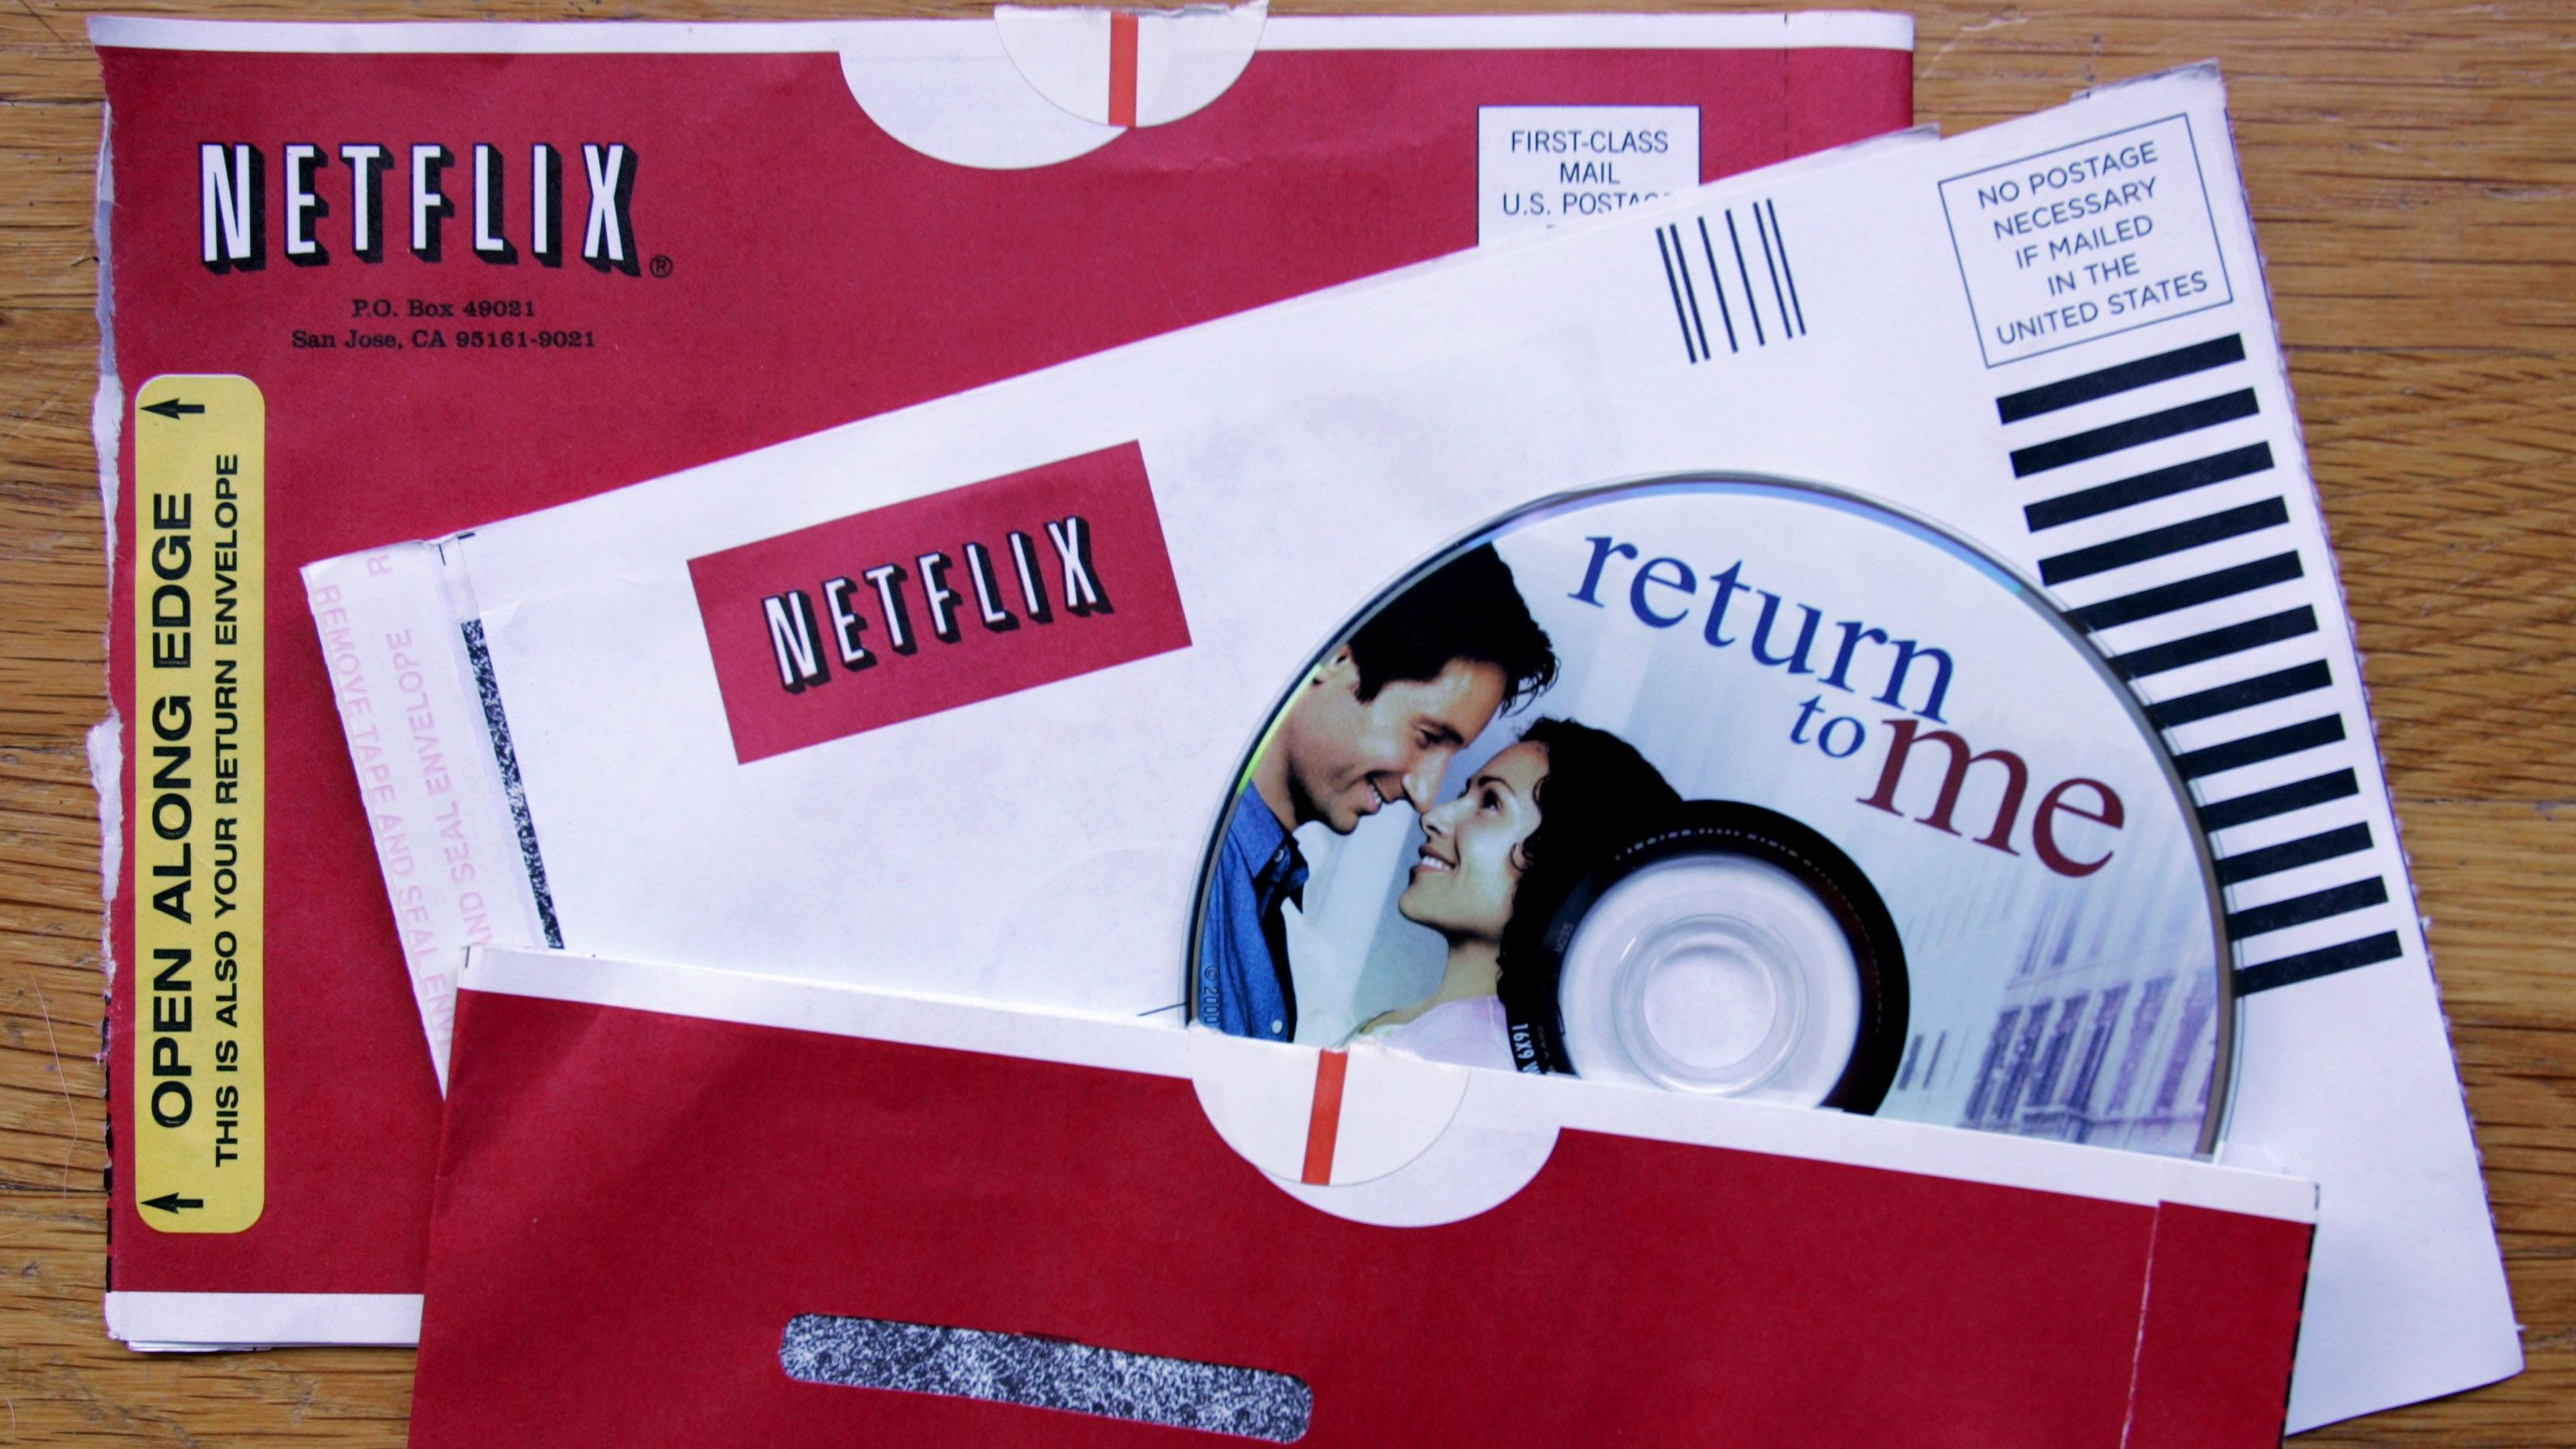 Twenty years ago, Netflix.com launched. The movie business has never been the same.